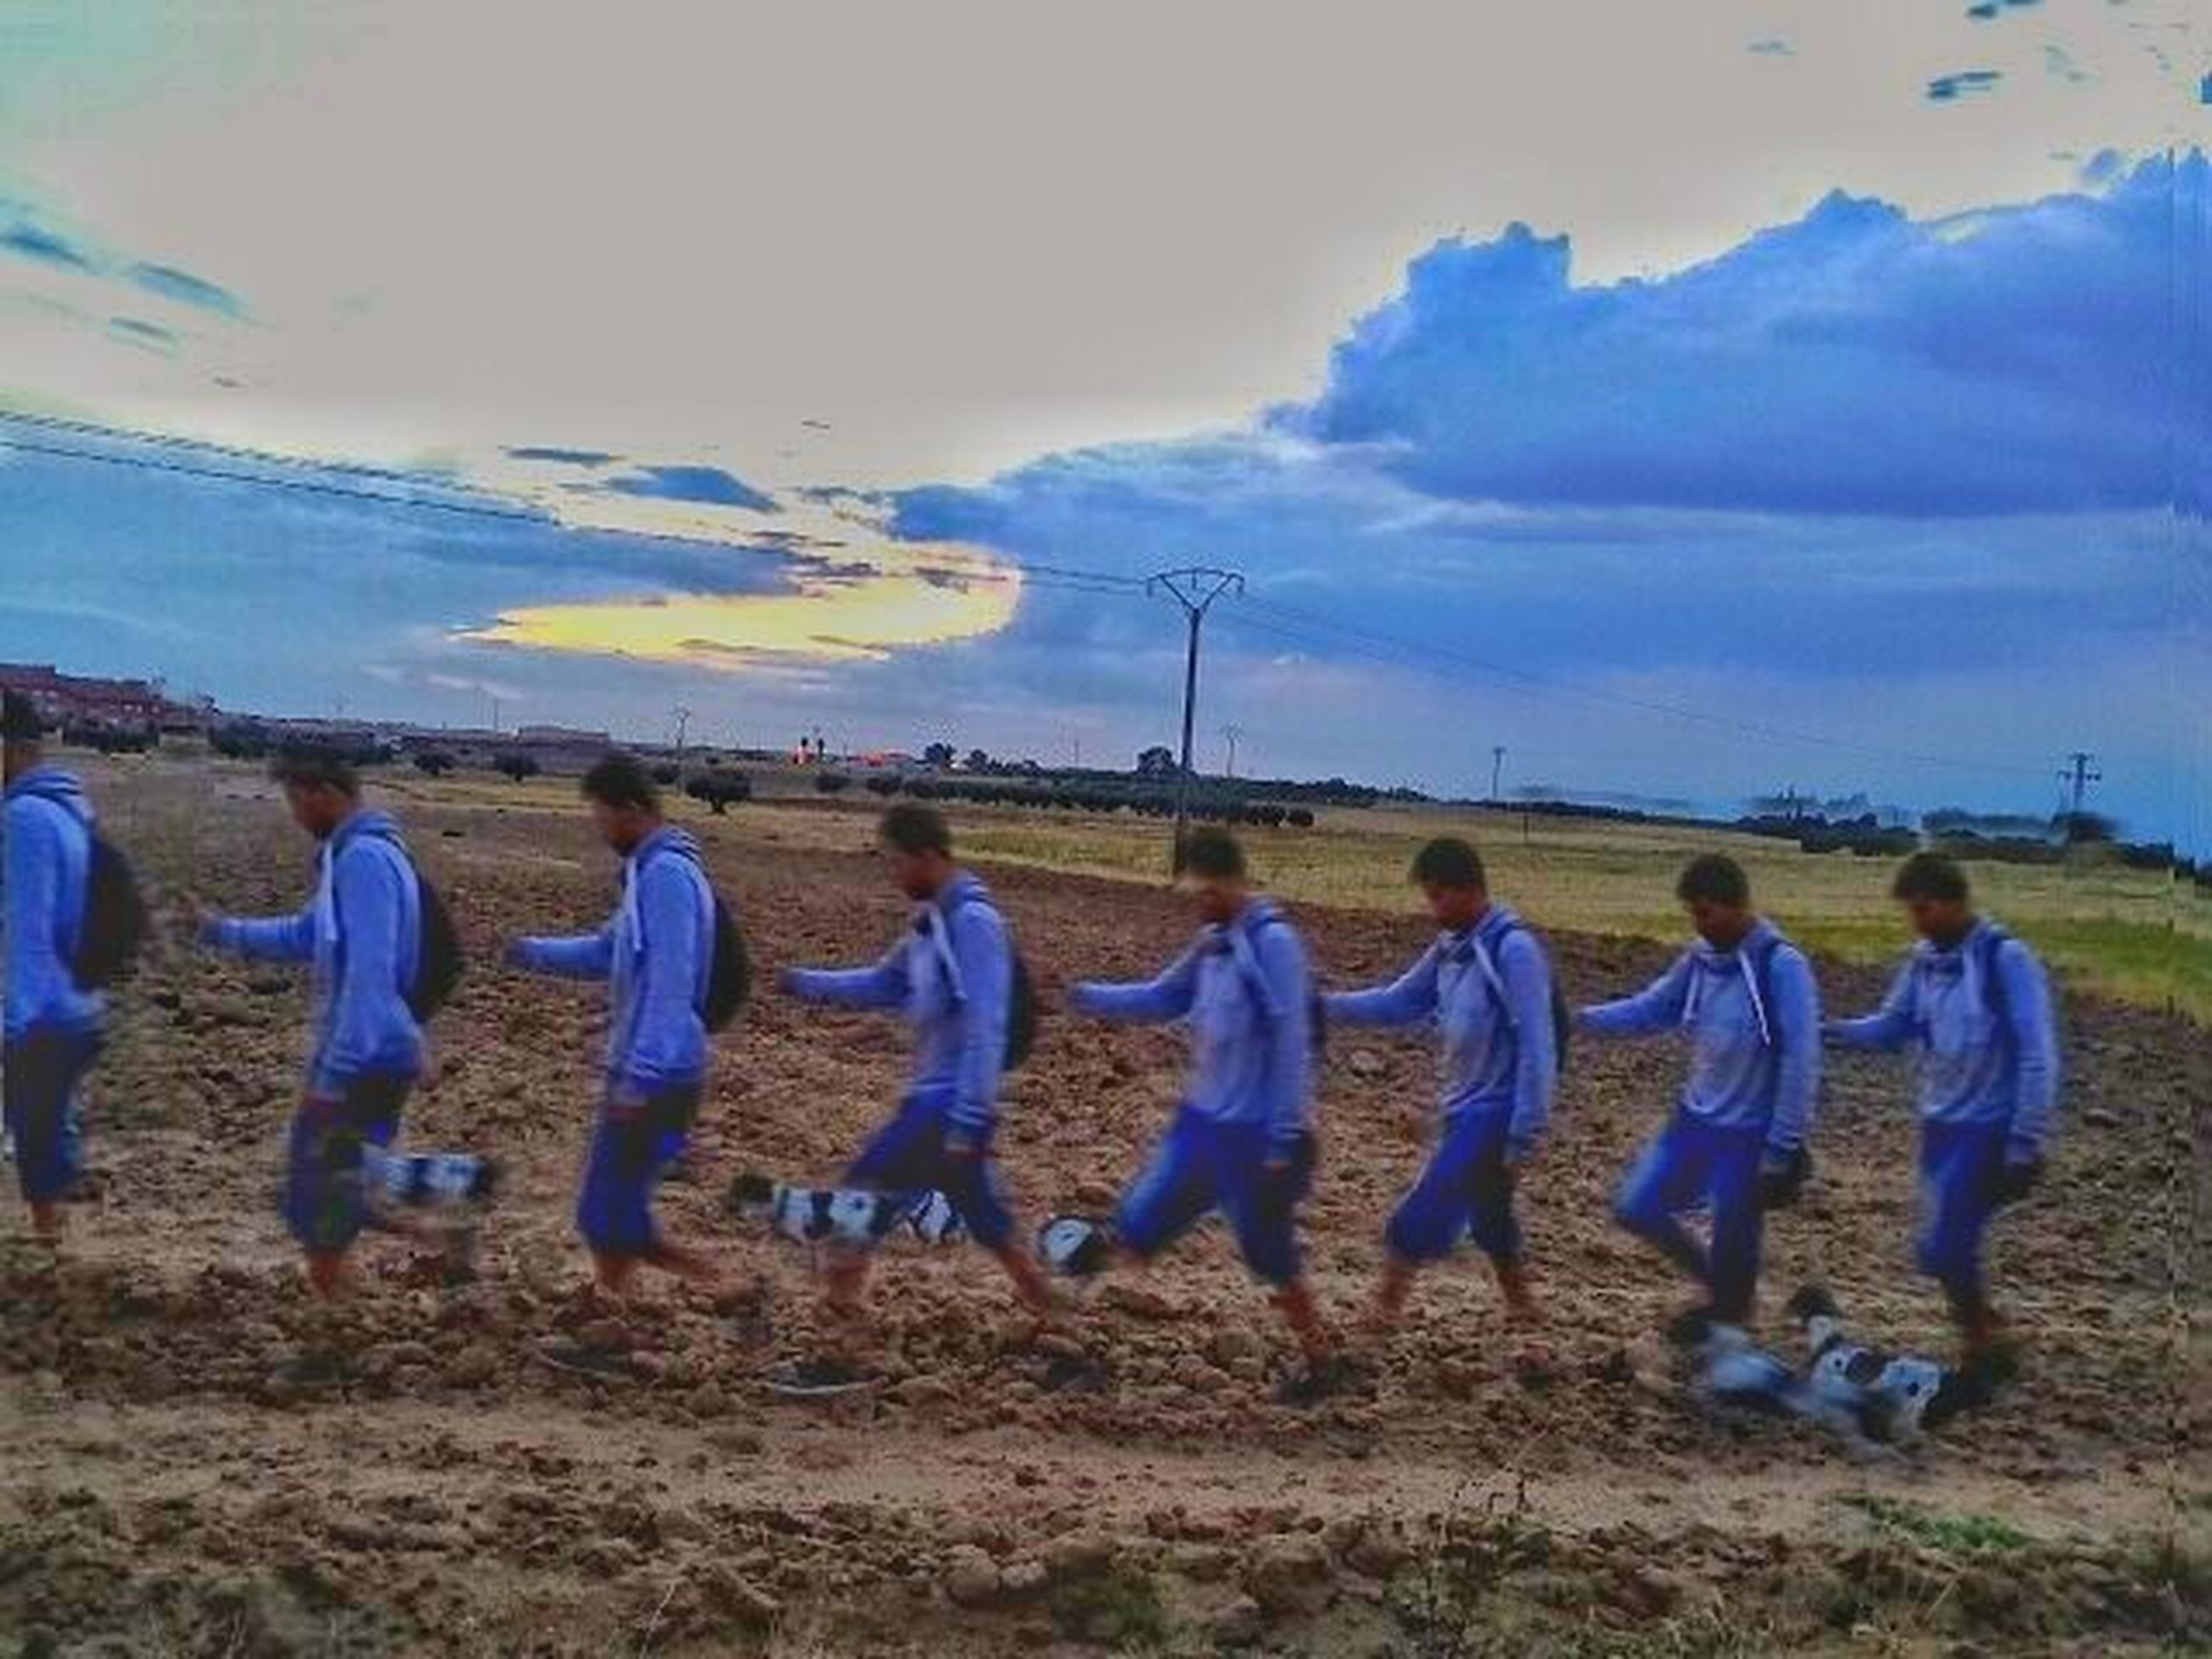 sky, landscape, cloud - sky, field, cloudy, large group of people, men, cloud, person, leisure activity, lifestyles, nature, rural scene, tranquil scene, blue, agriculture, tranquility, scenics, beauty in nature